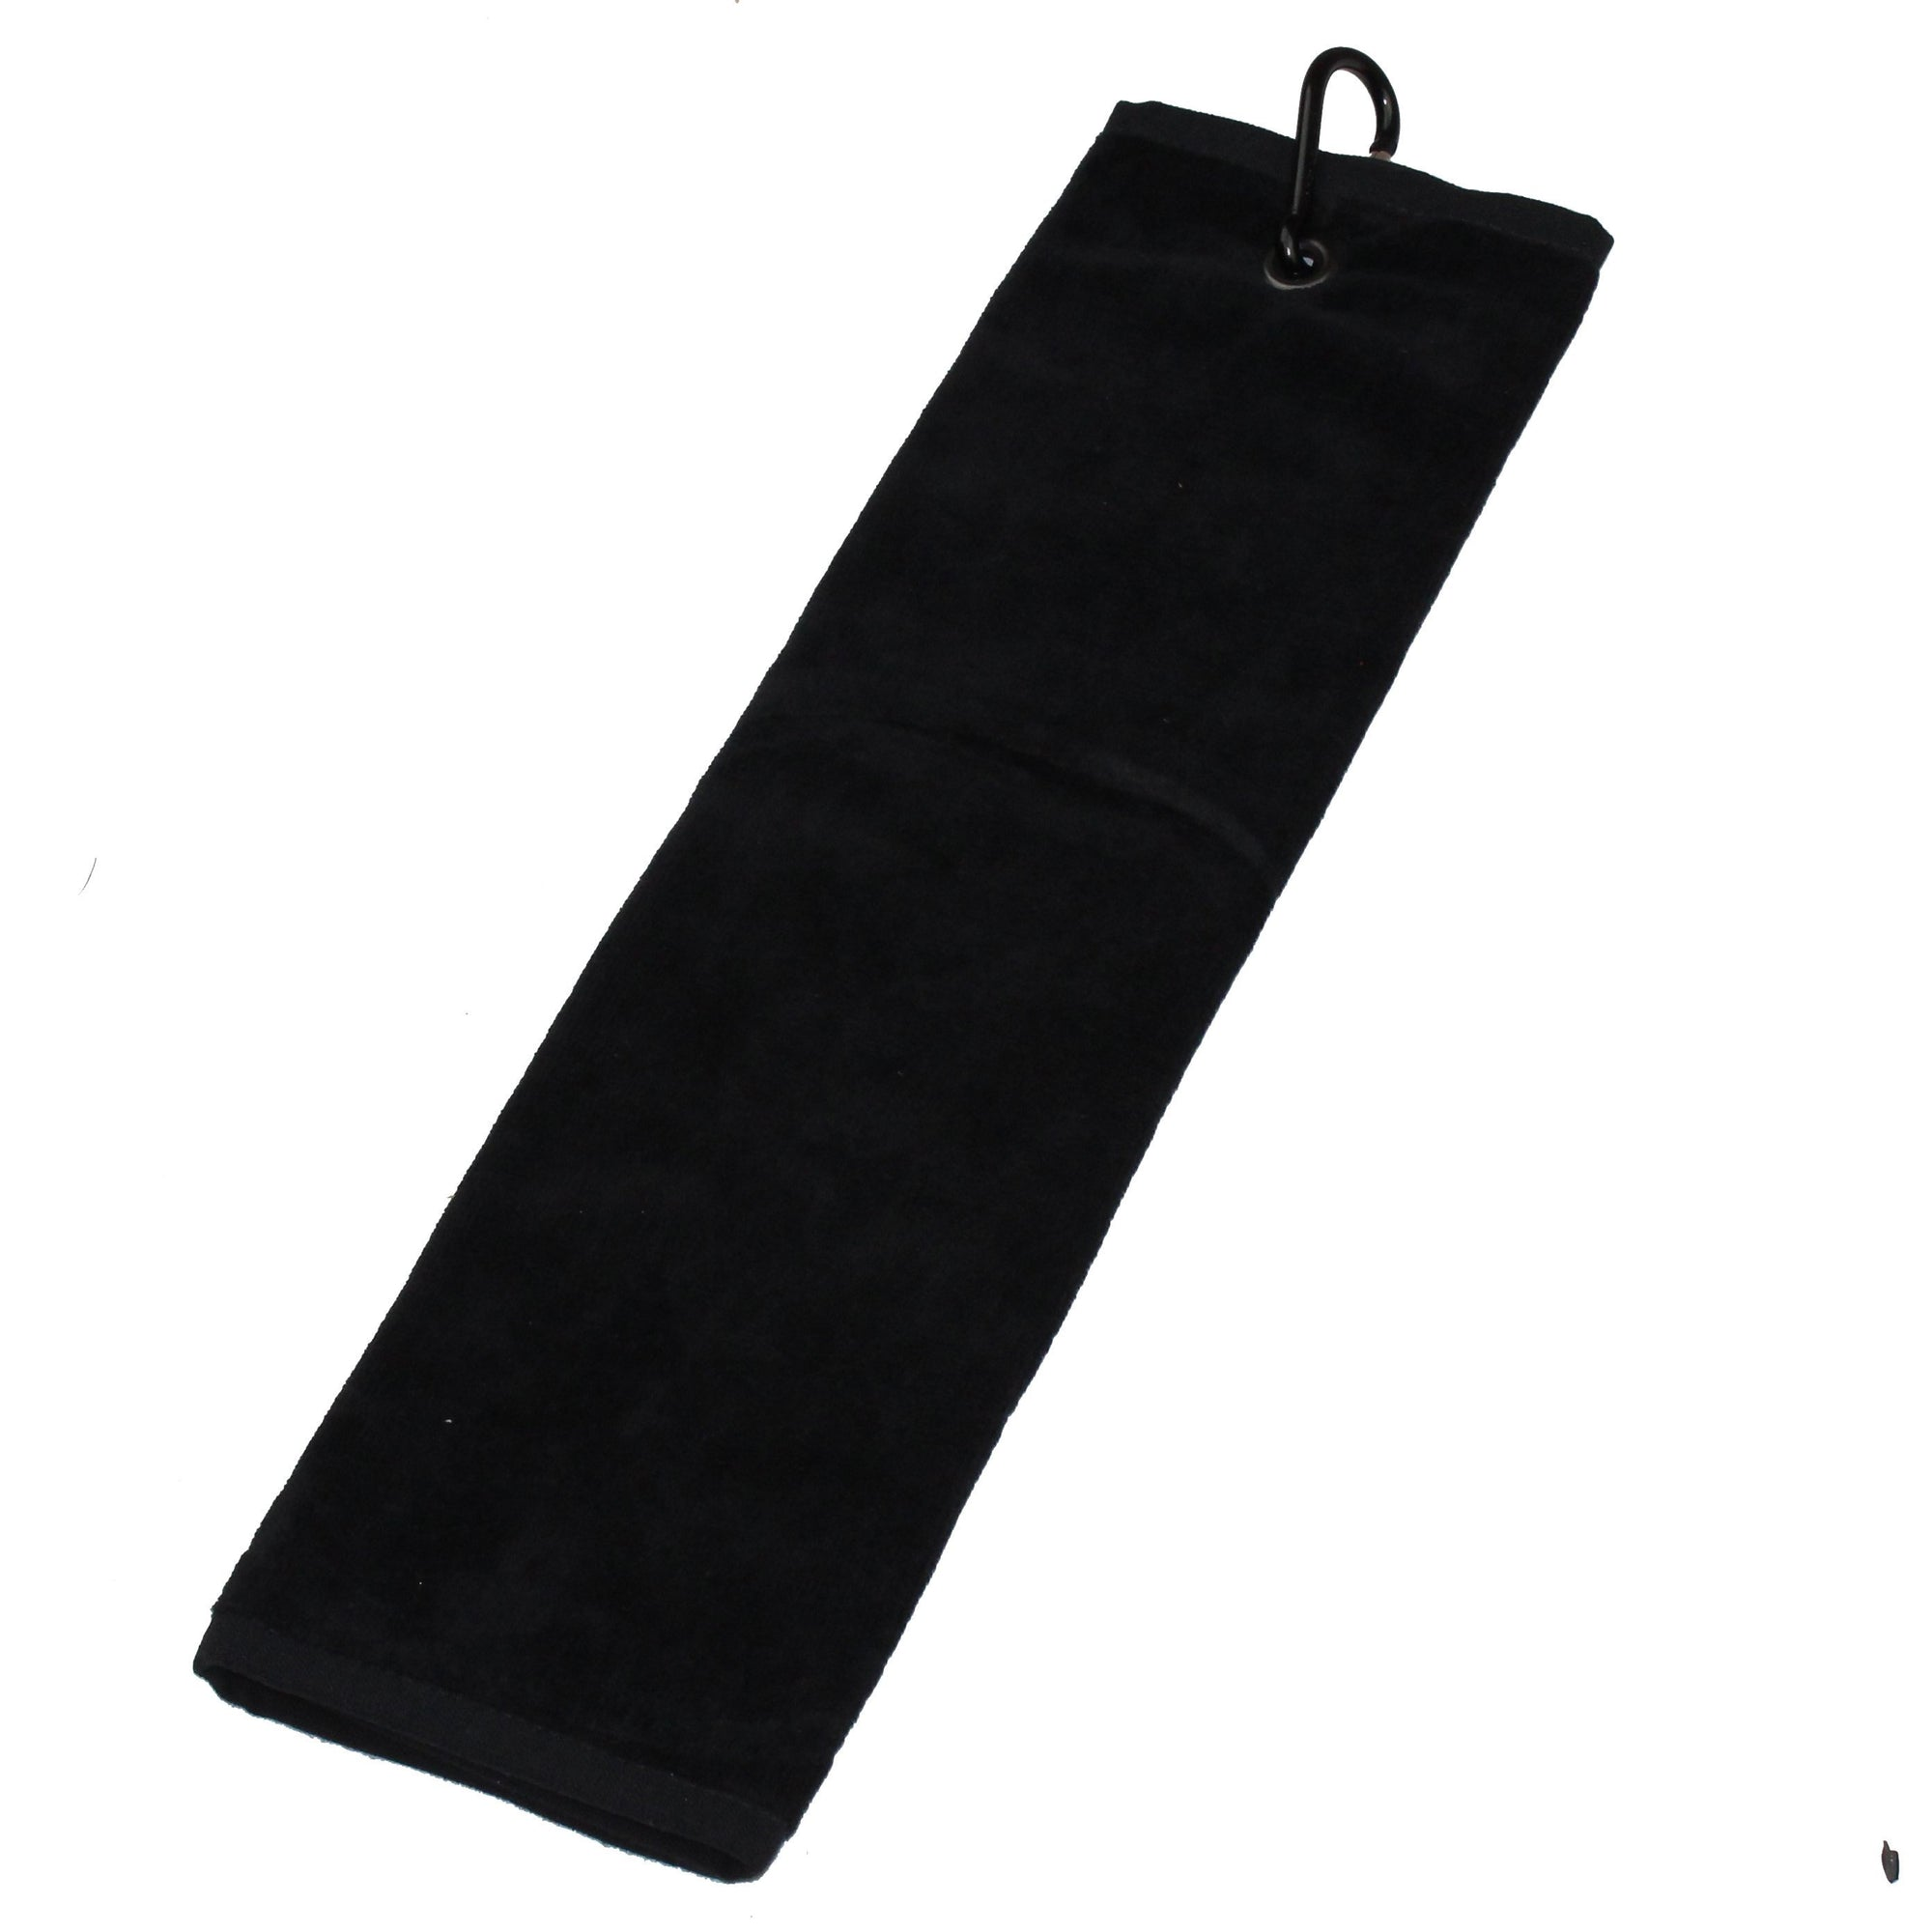 Druids Golf - Corporate Velour Tri-Fold Towel (Black)